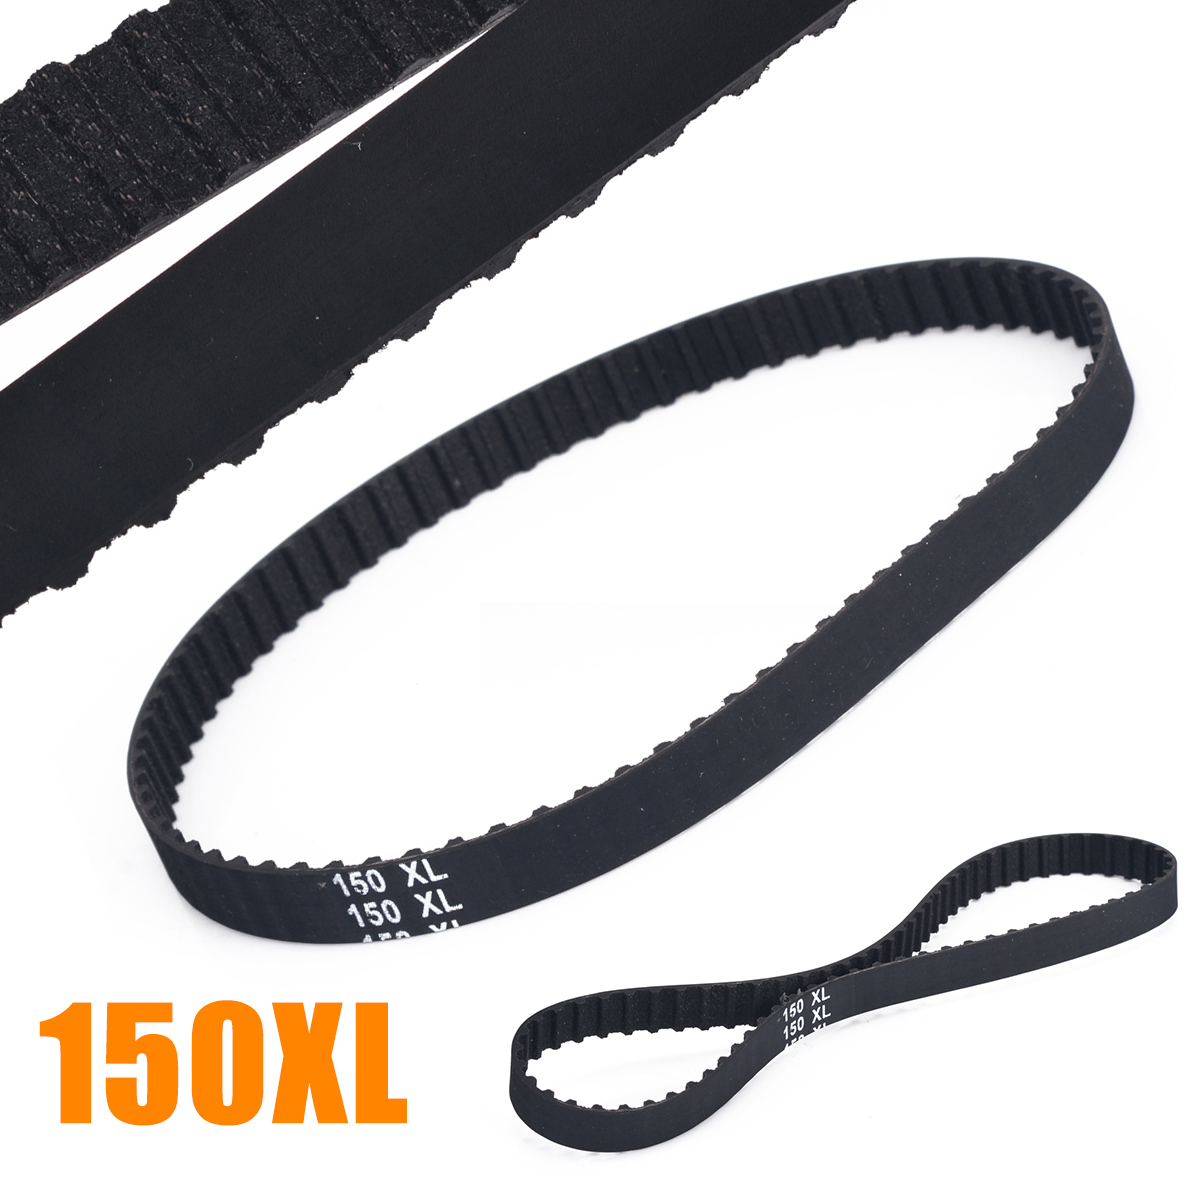 1 Piece Timing Belt XL 10mm Aging-Resistant  150XL037 Black Timing Belts 75 Teeth Cogged Rubber Geared Drive Belt1 Piece Timing Belt XL 10mm Aging-Resistant  150XL037 Black Timing Belts 75 Teeth Cogged Rubber Geared Drive Belt